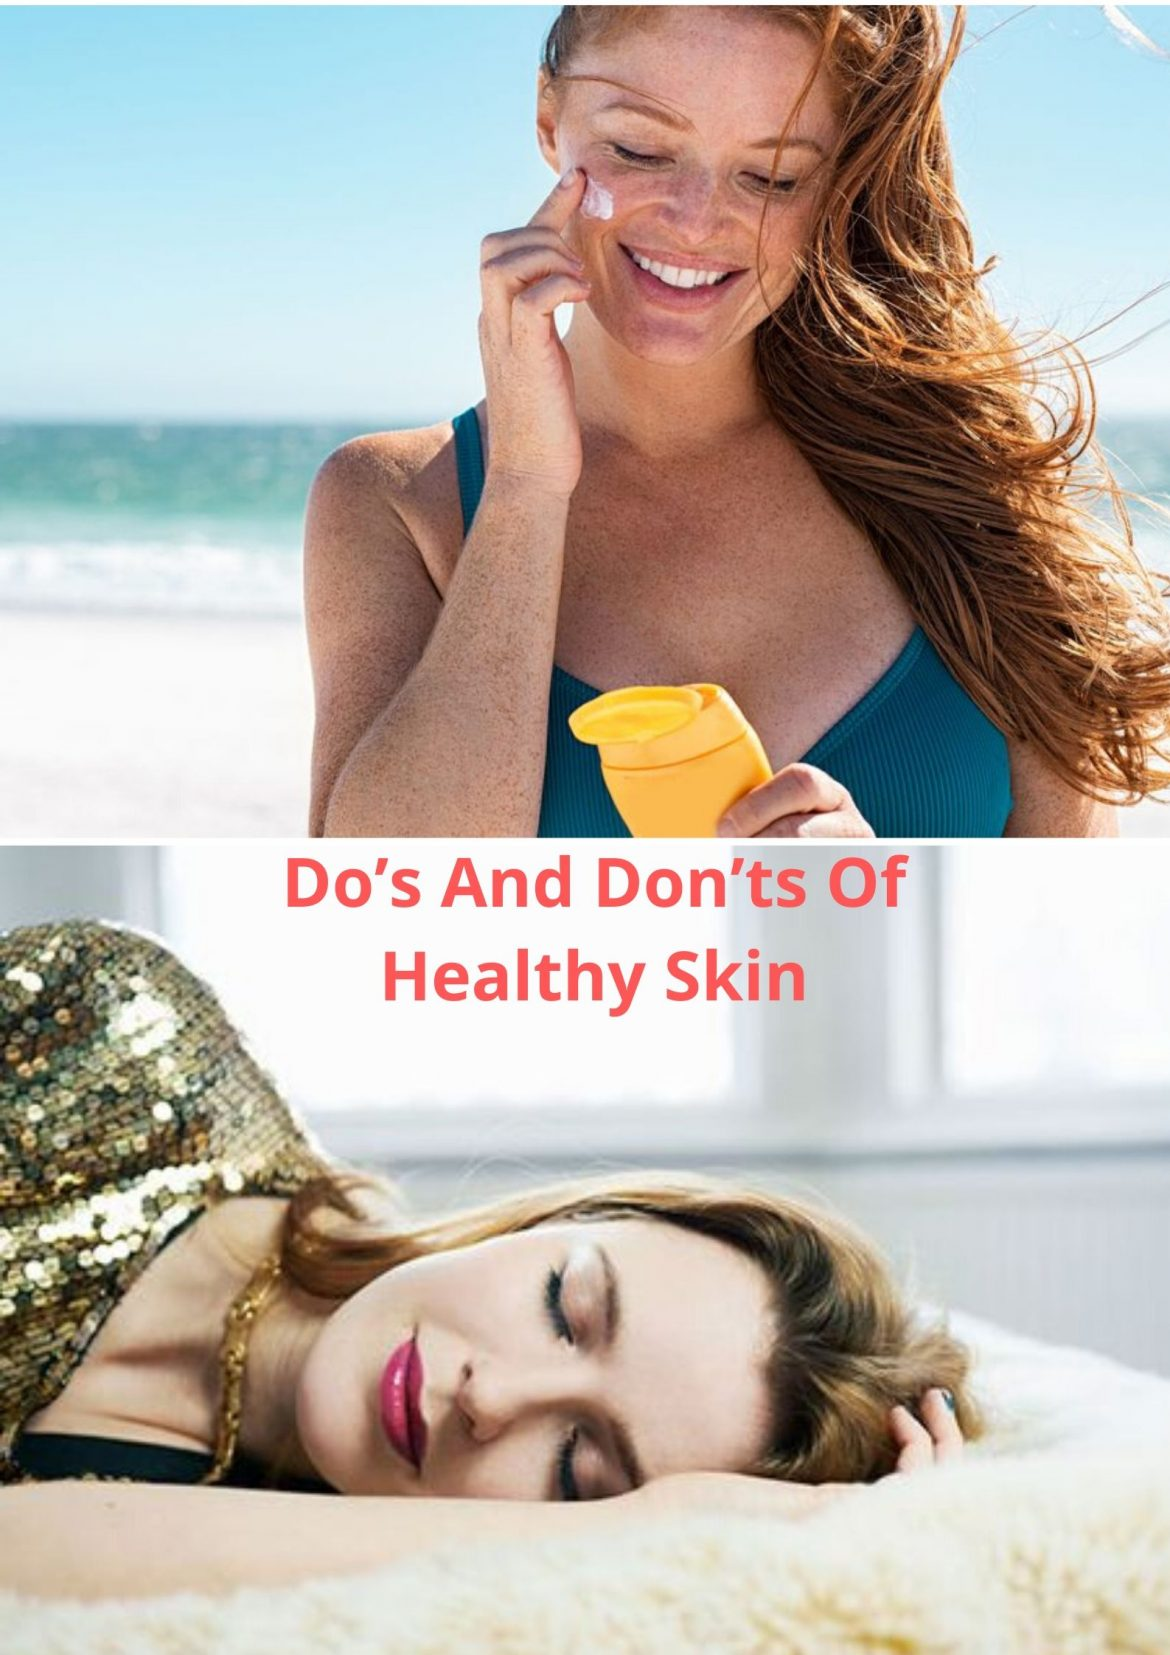 Do's And Don'ts Of Healthy Skin